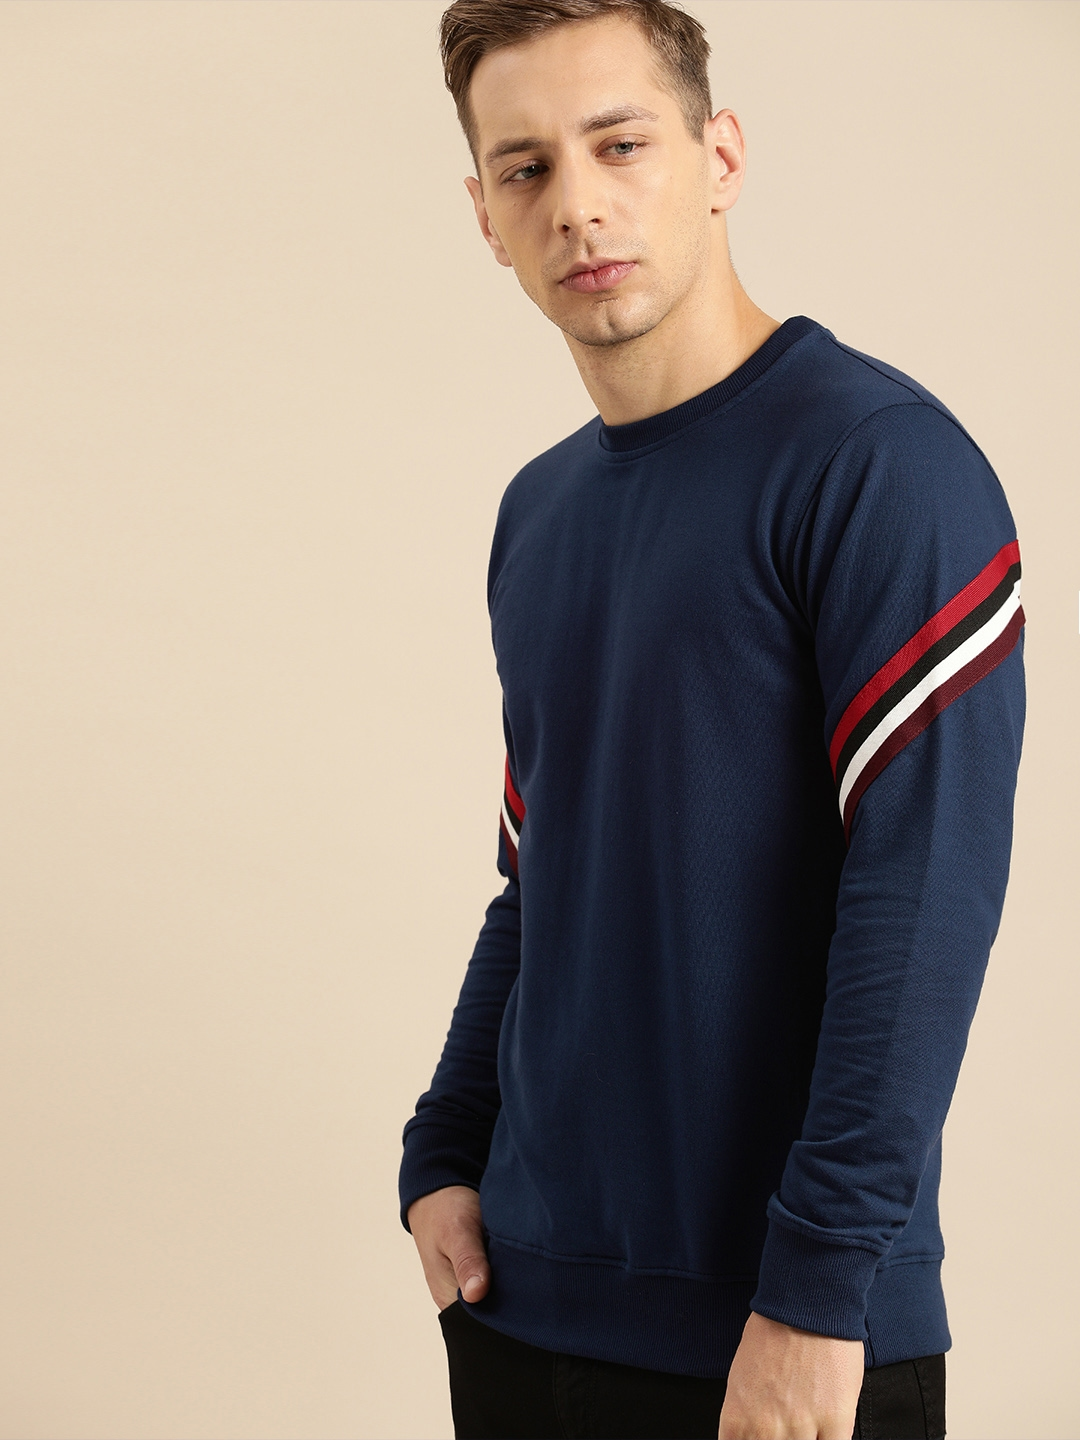 ether Men Navy Blue Solid Sweatshirt with Striped Sleeve